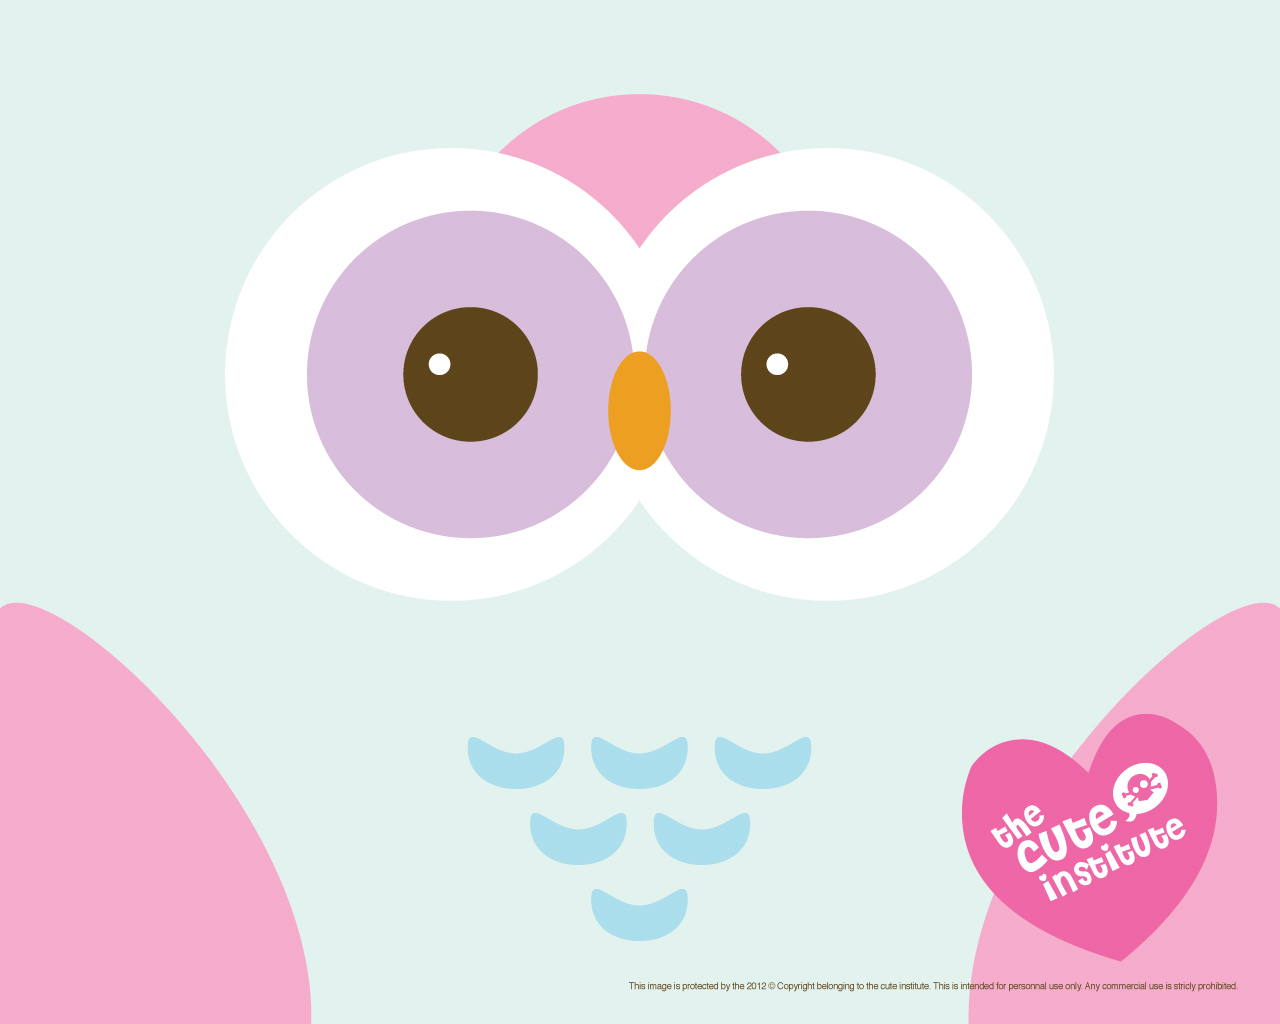 1280x1024px cute owl wallpapers wallpapersafari cute owl wallpaper 1280x1024 45985 1280x1024 voltagebd Image collections